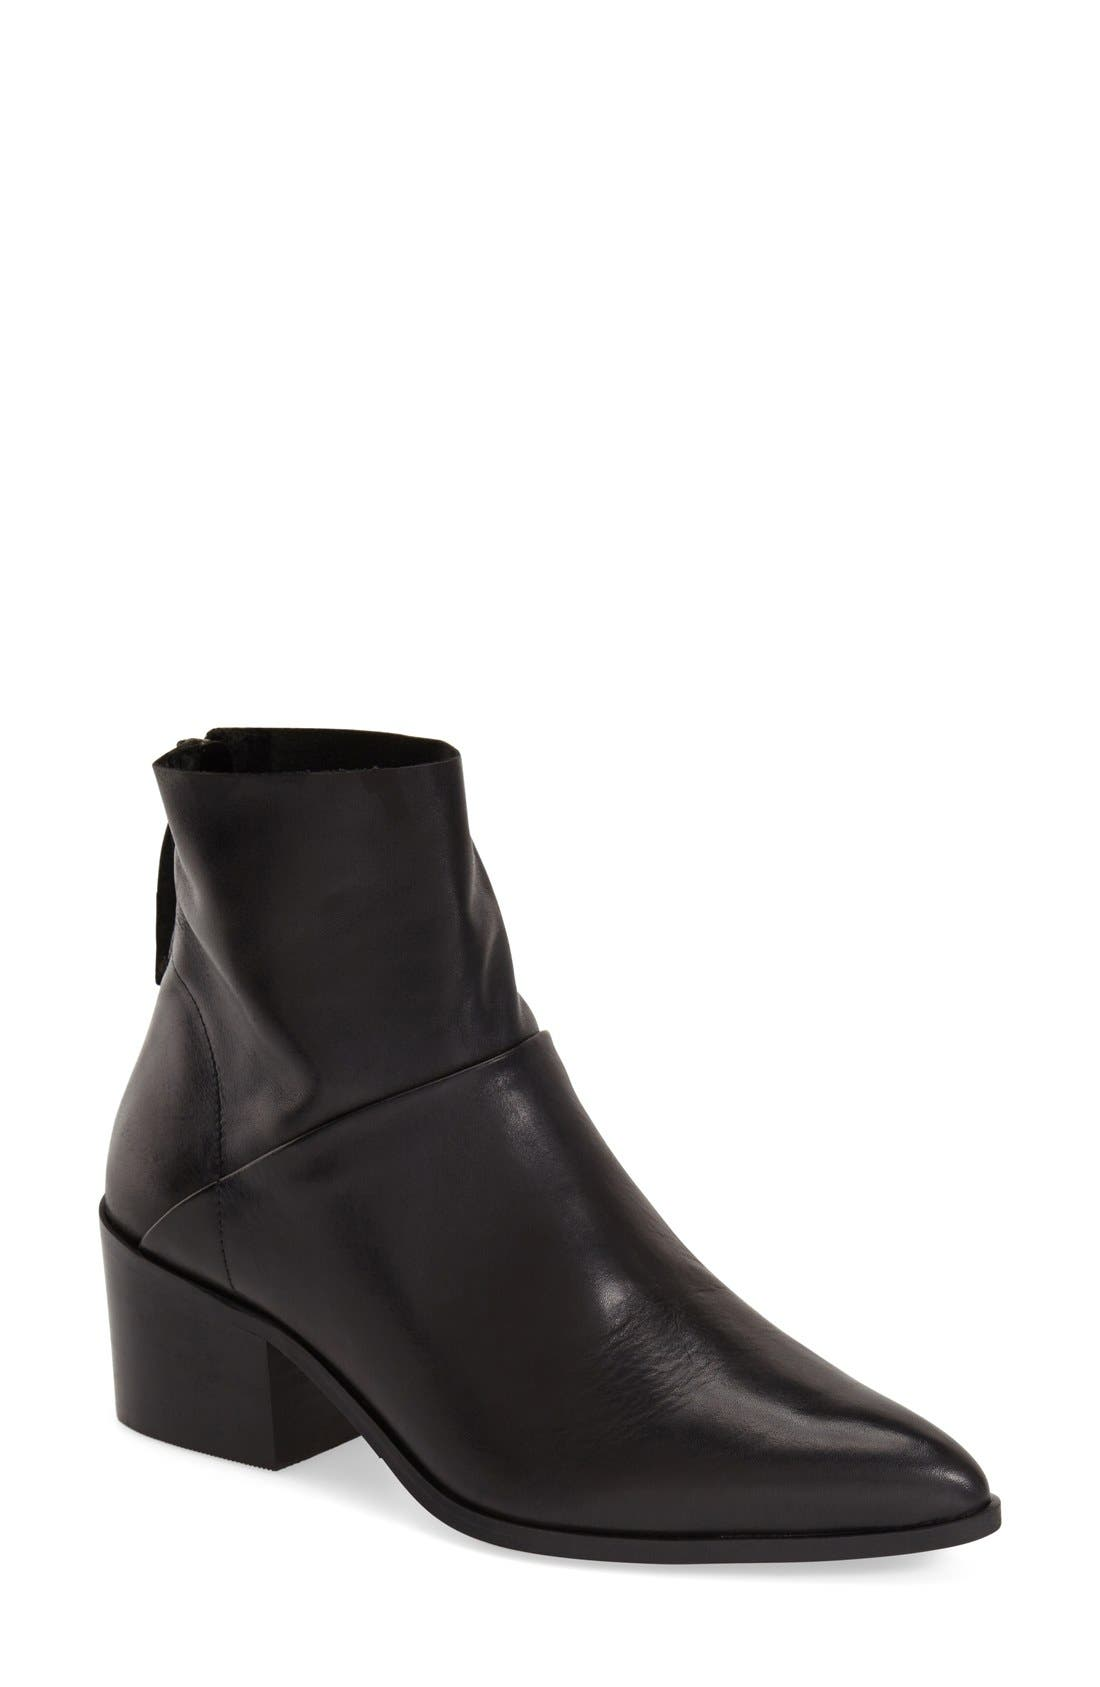 TOPSHOP 'Midnight' Pointy Toe Boot, Main, color, 001